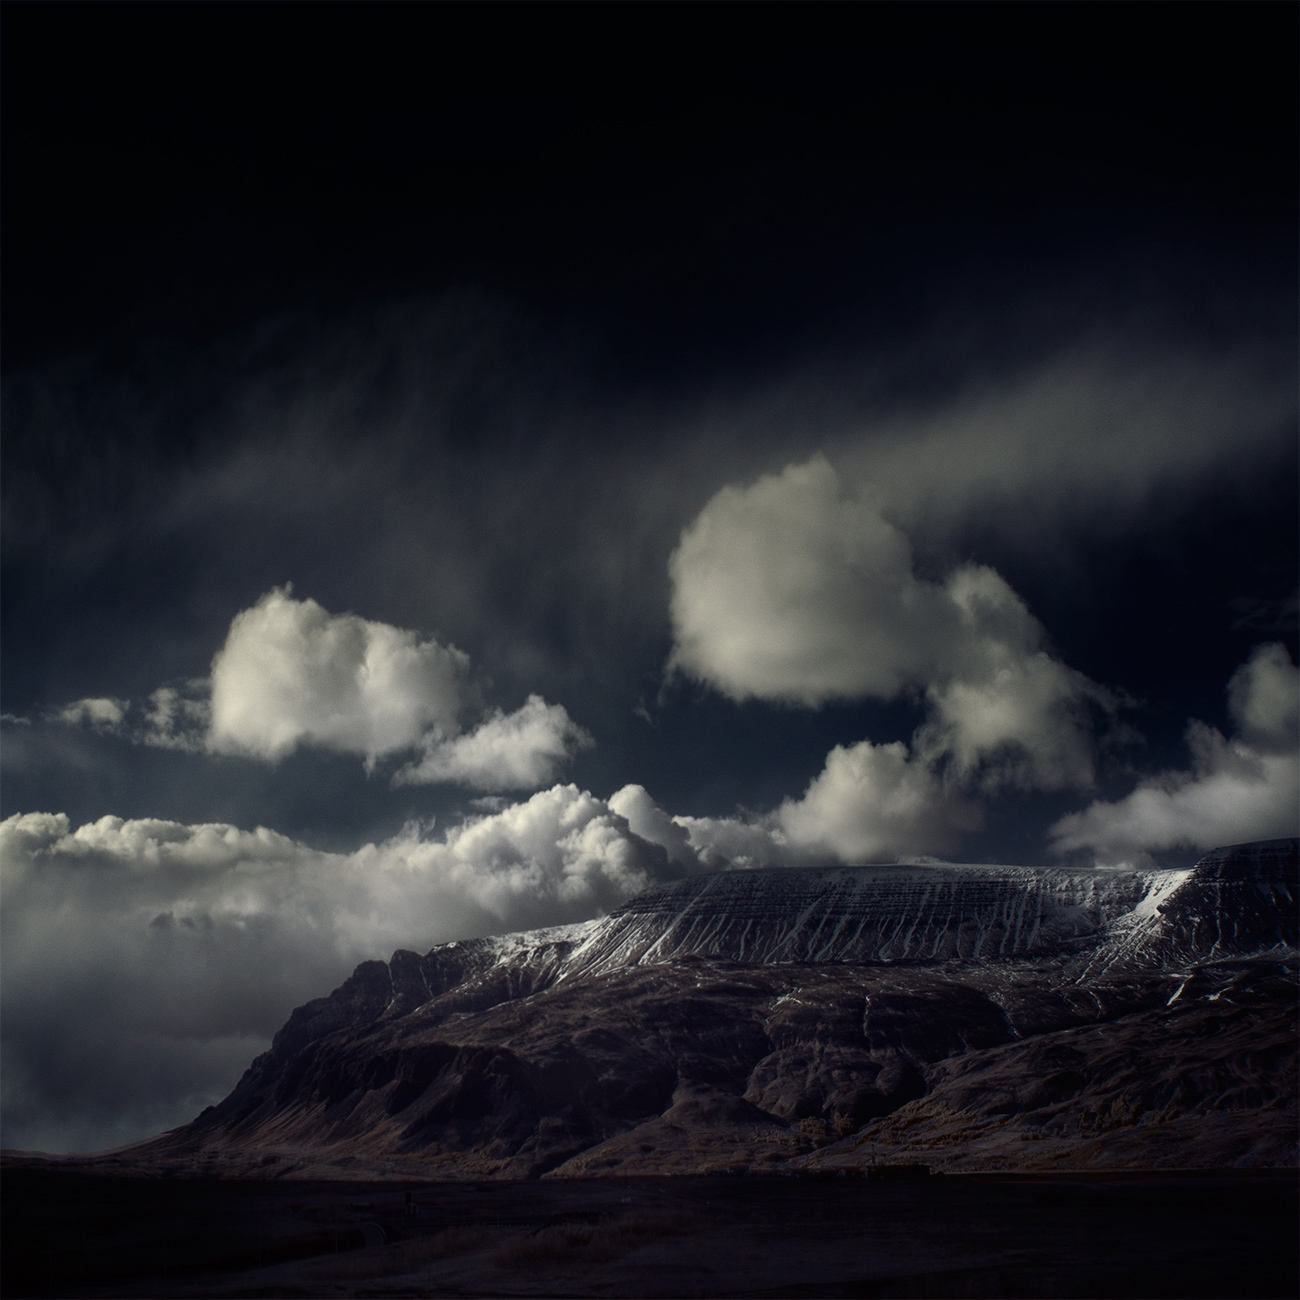 Iceland Infrared: Stark Photographs of Icelandic Landscapes by Andy Lee landscapes infrared Iceland